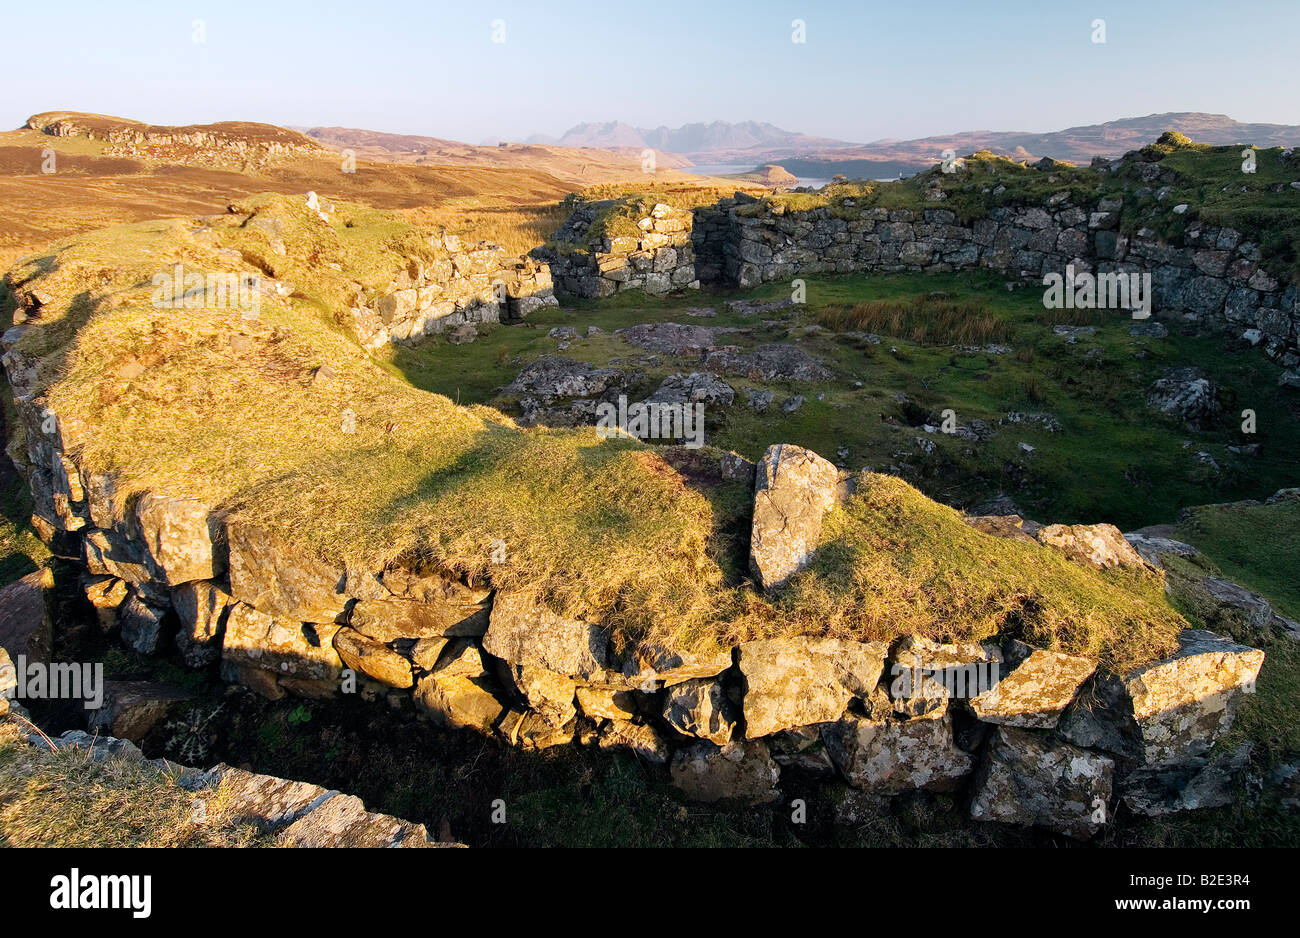 Double walled Dun Beag Broch 2000 year old circular settlement at Bracadale, Isle of Skye, Scotland. Cuillin mountains Stock Photo